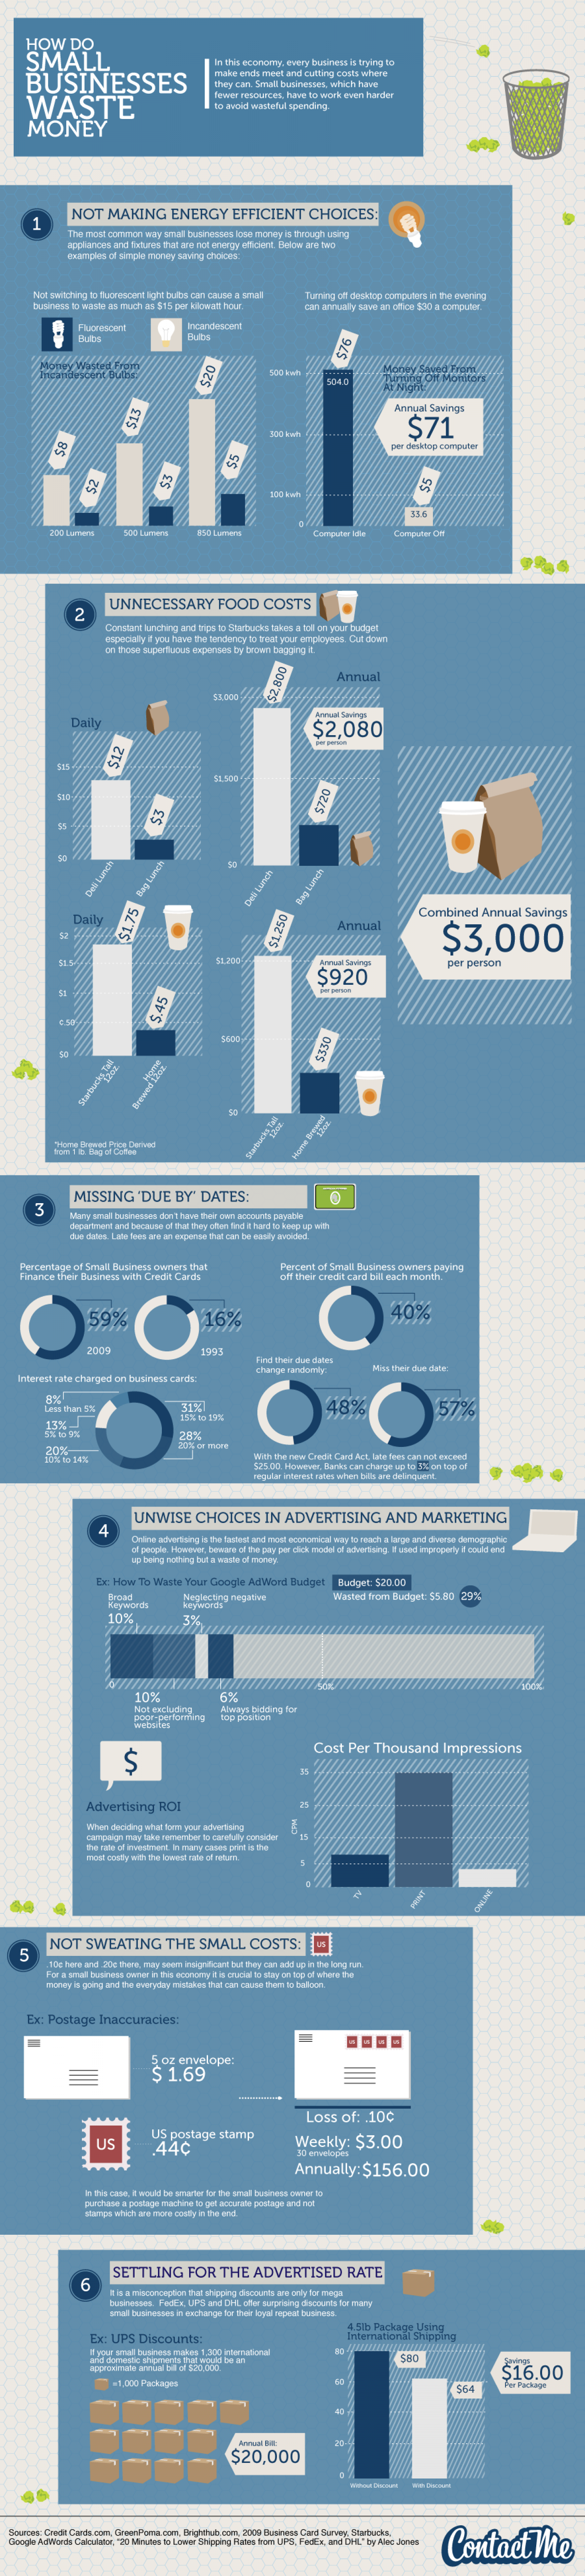 How Small Businesses Waste Money Infographic